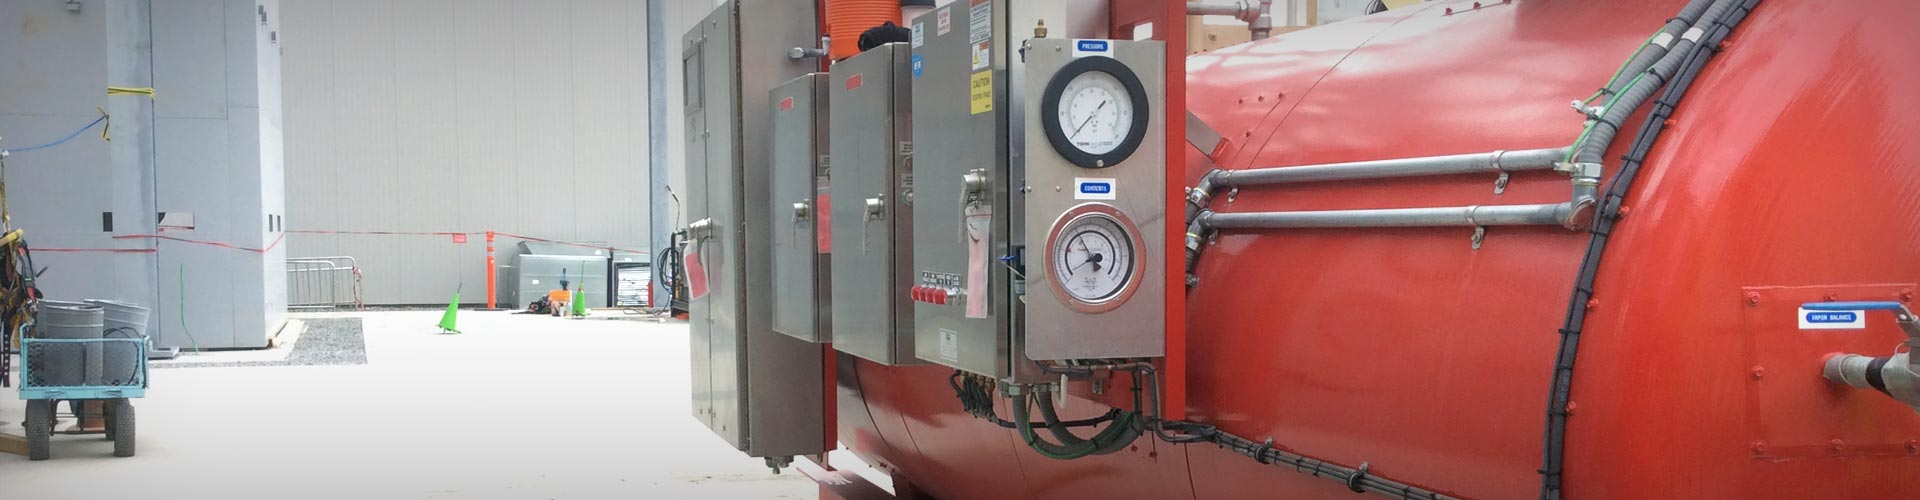 Low Pressure C02 Fire Suppression Systems – American Fire